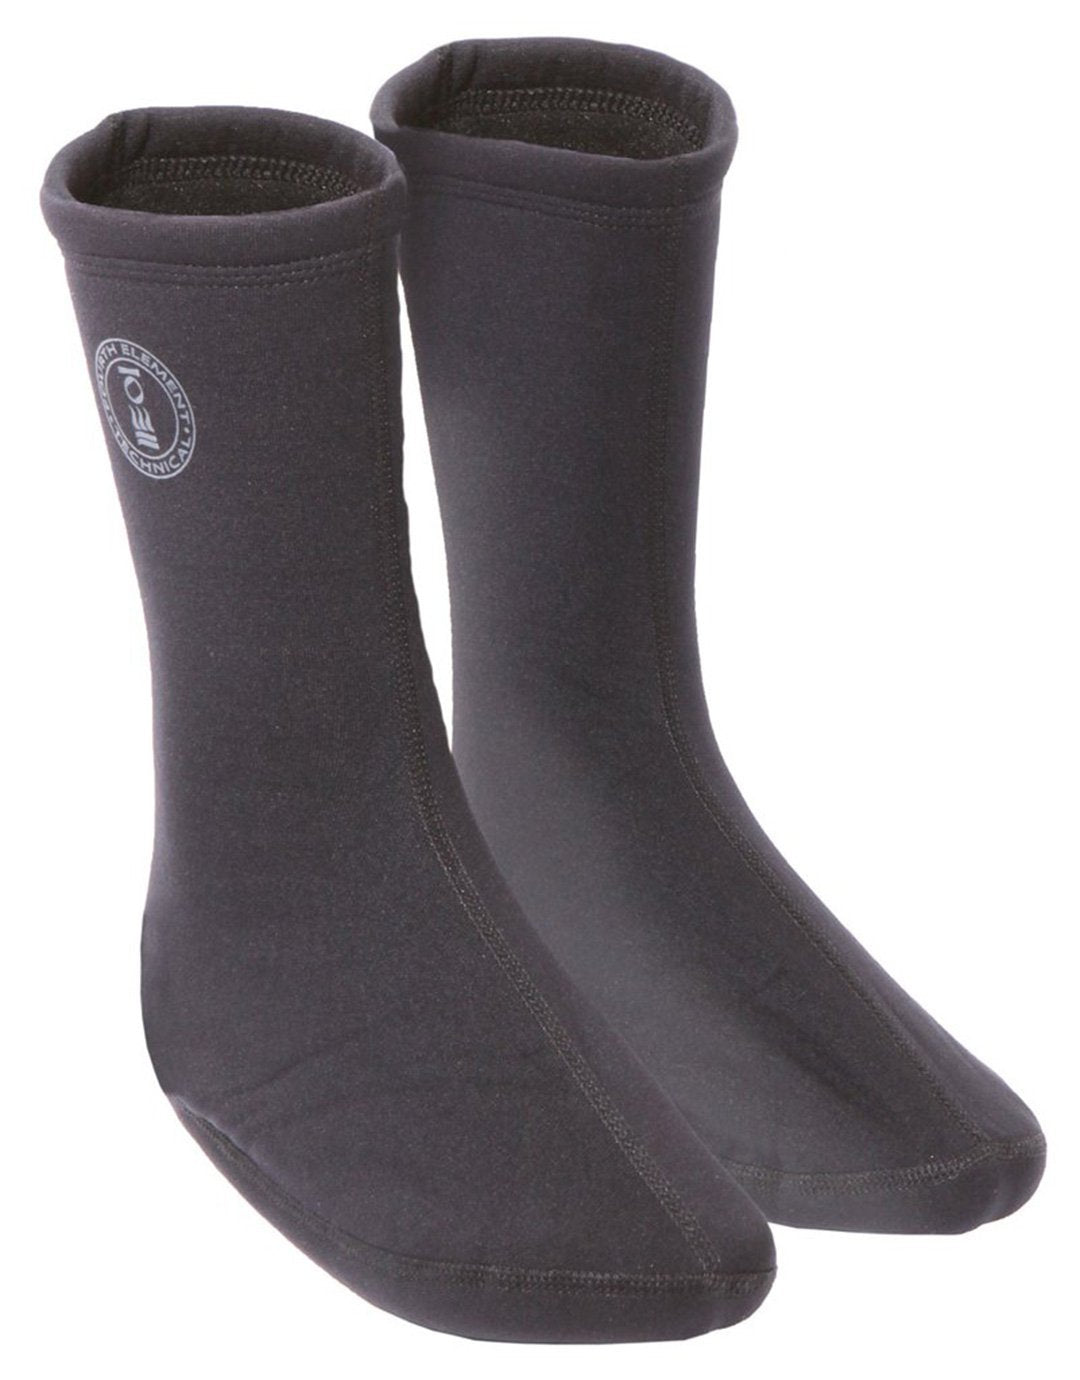 Image of Fourth Element Xerotherm Sock